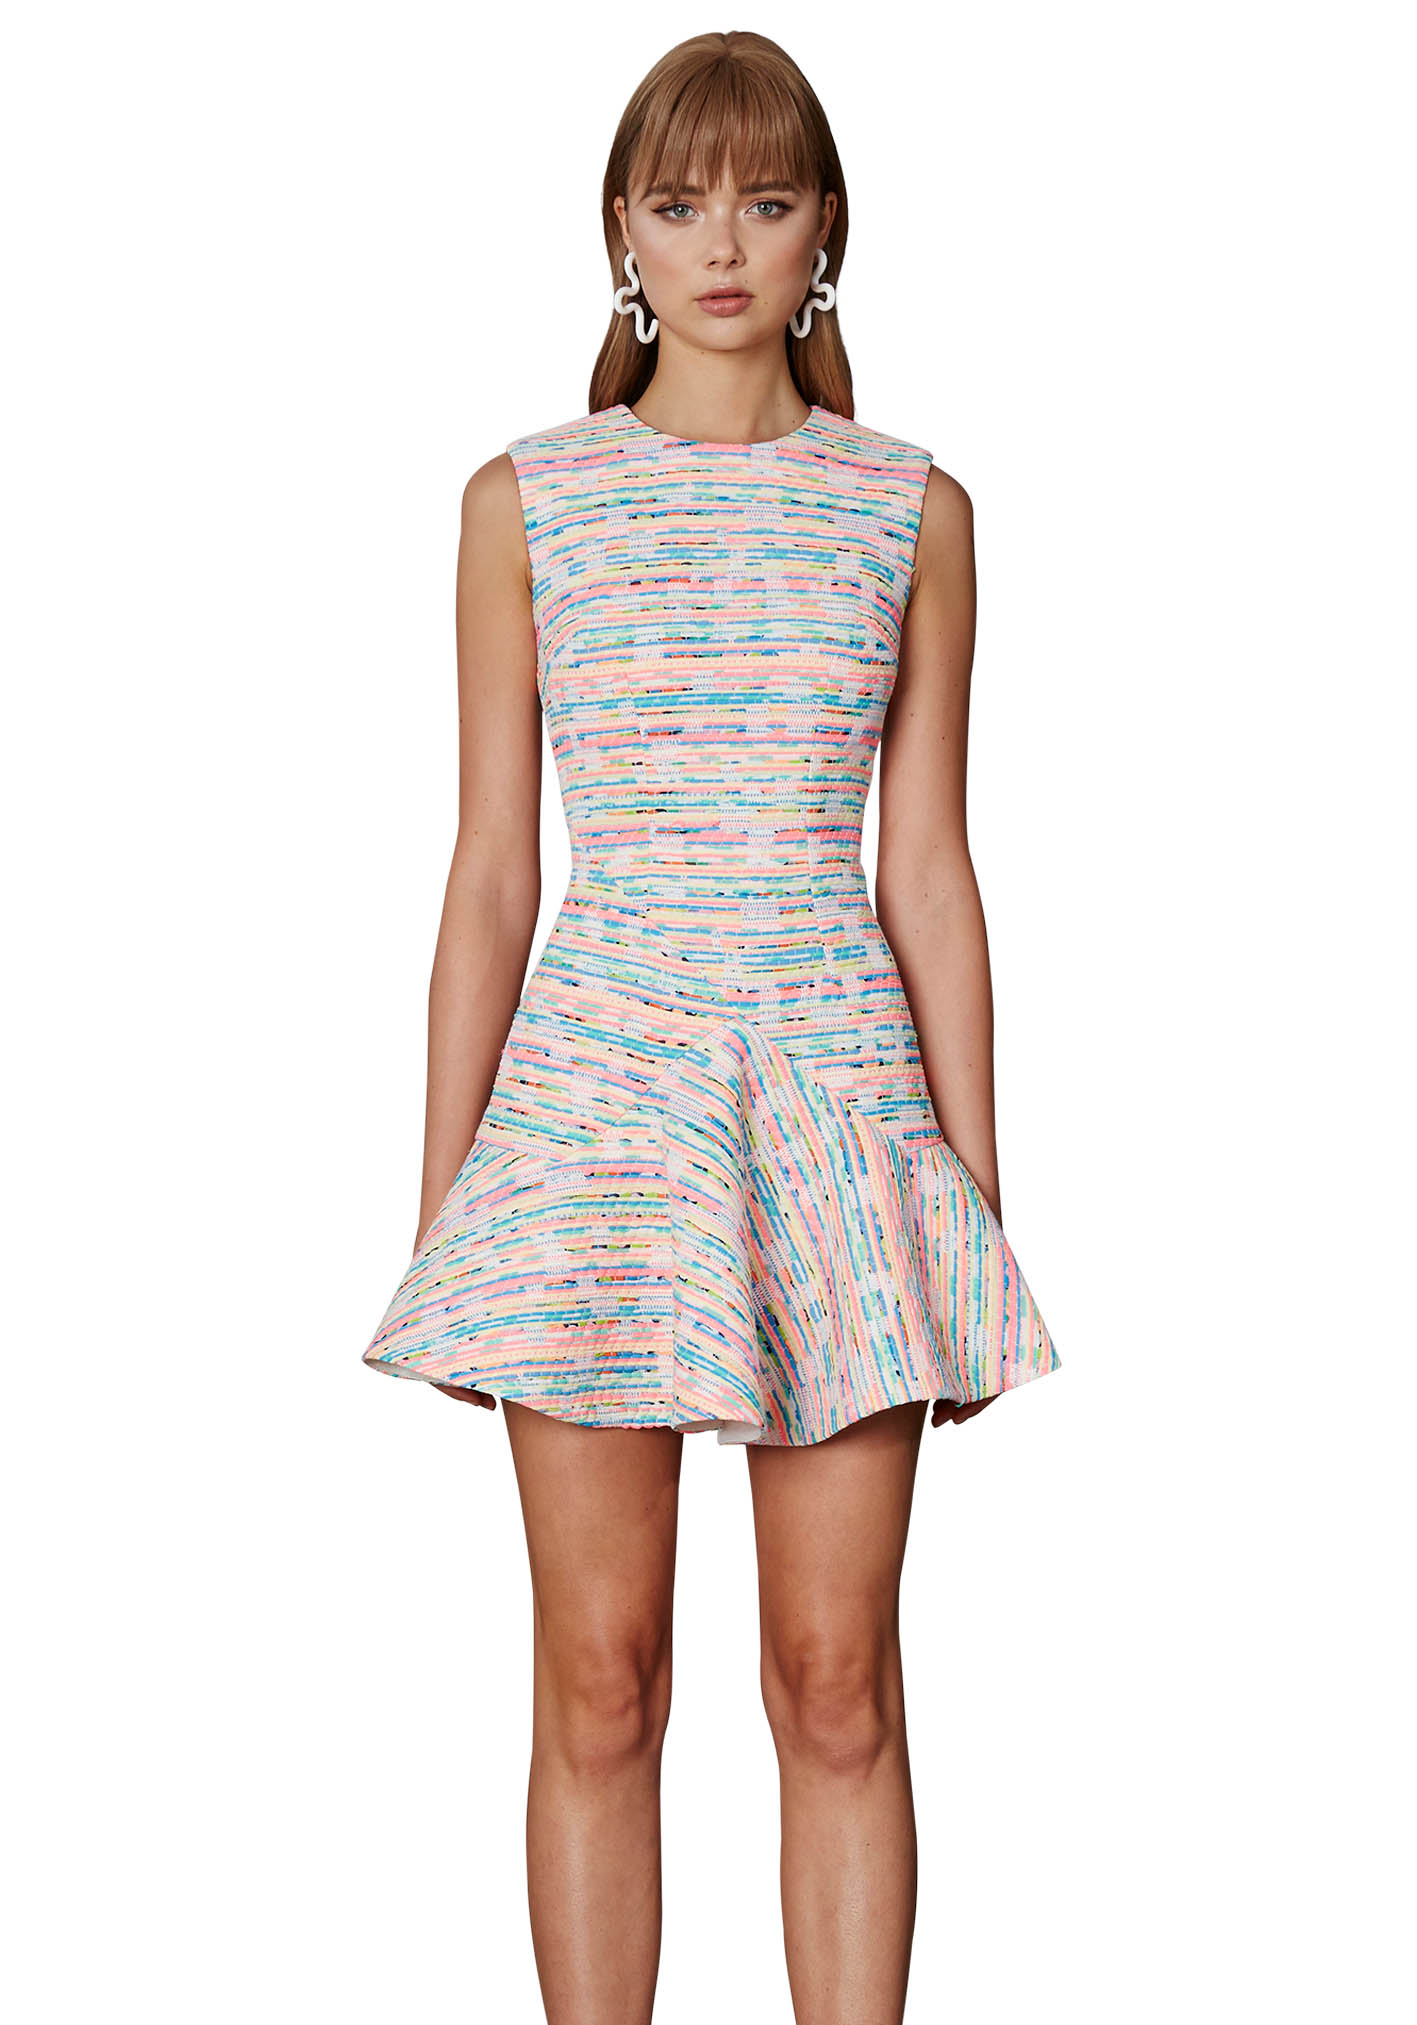 New-BY-JOHNNY-Neon-Weave-V-Flare-Mini-Dress-Neon-Weave